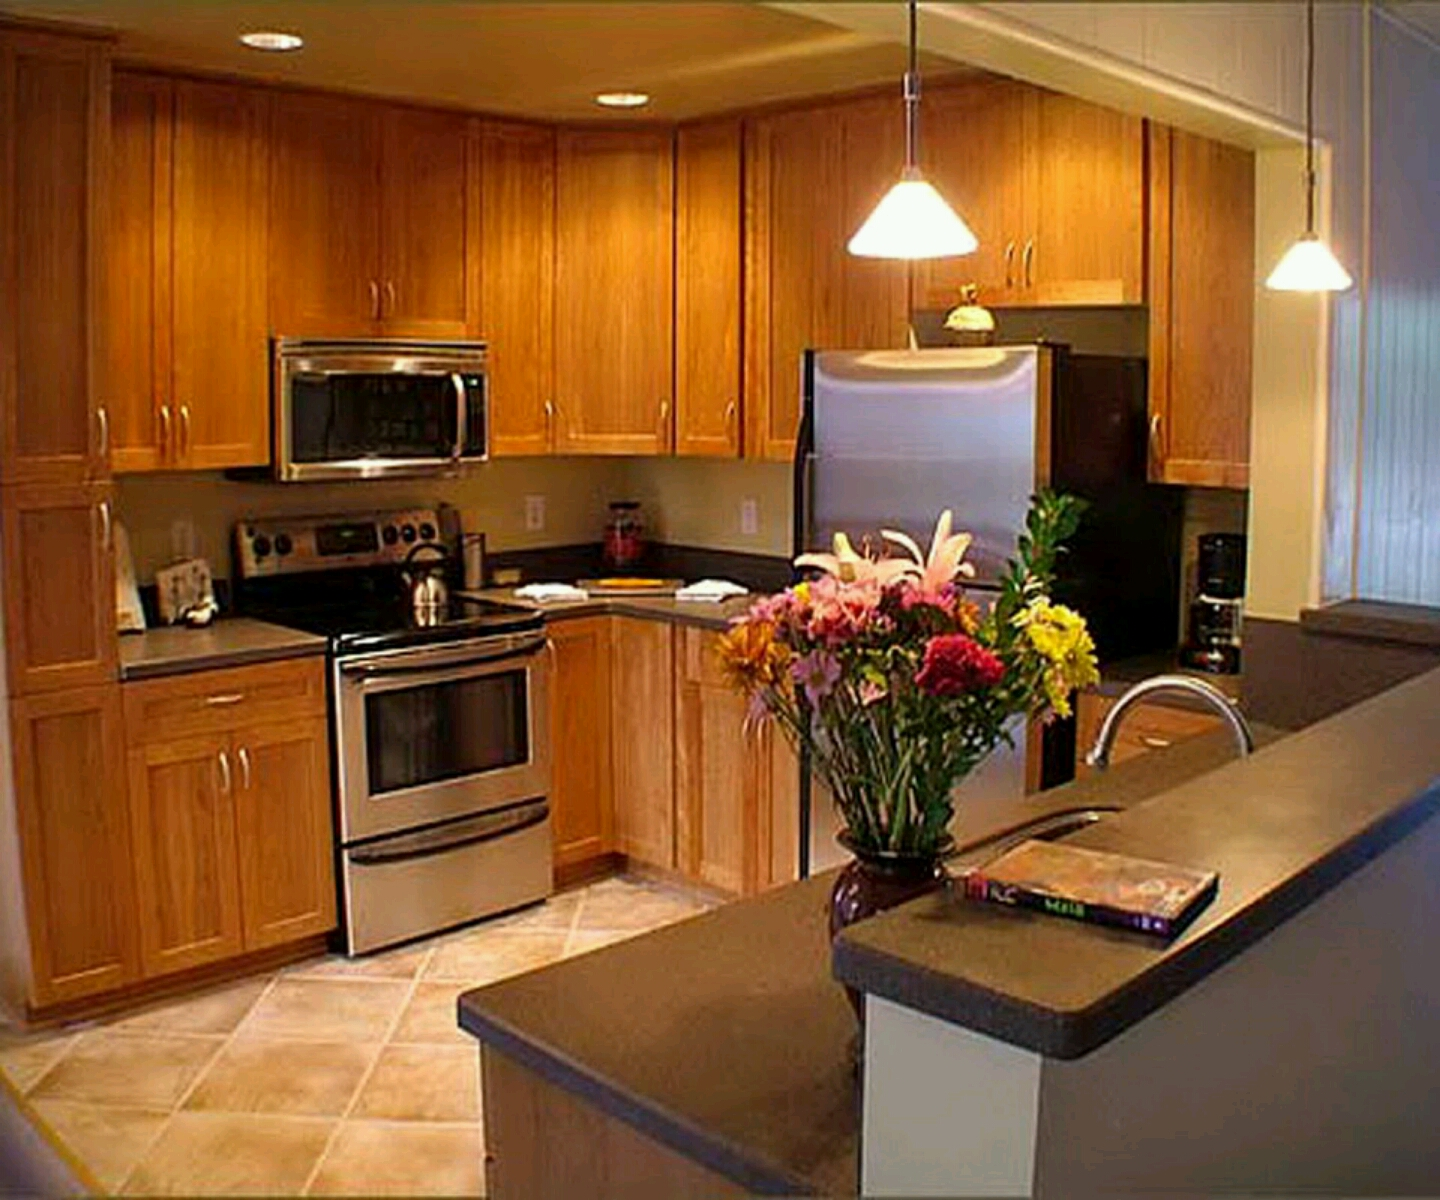 Contemporary wooden kitchen cabinets bill house plans for Modern wood kitchen cabinets